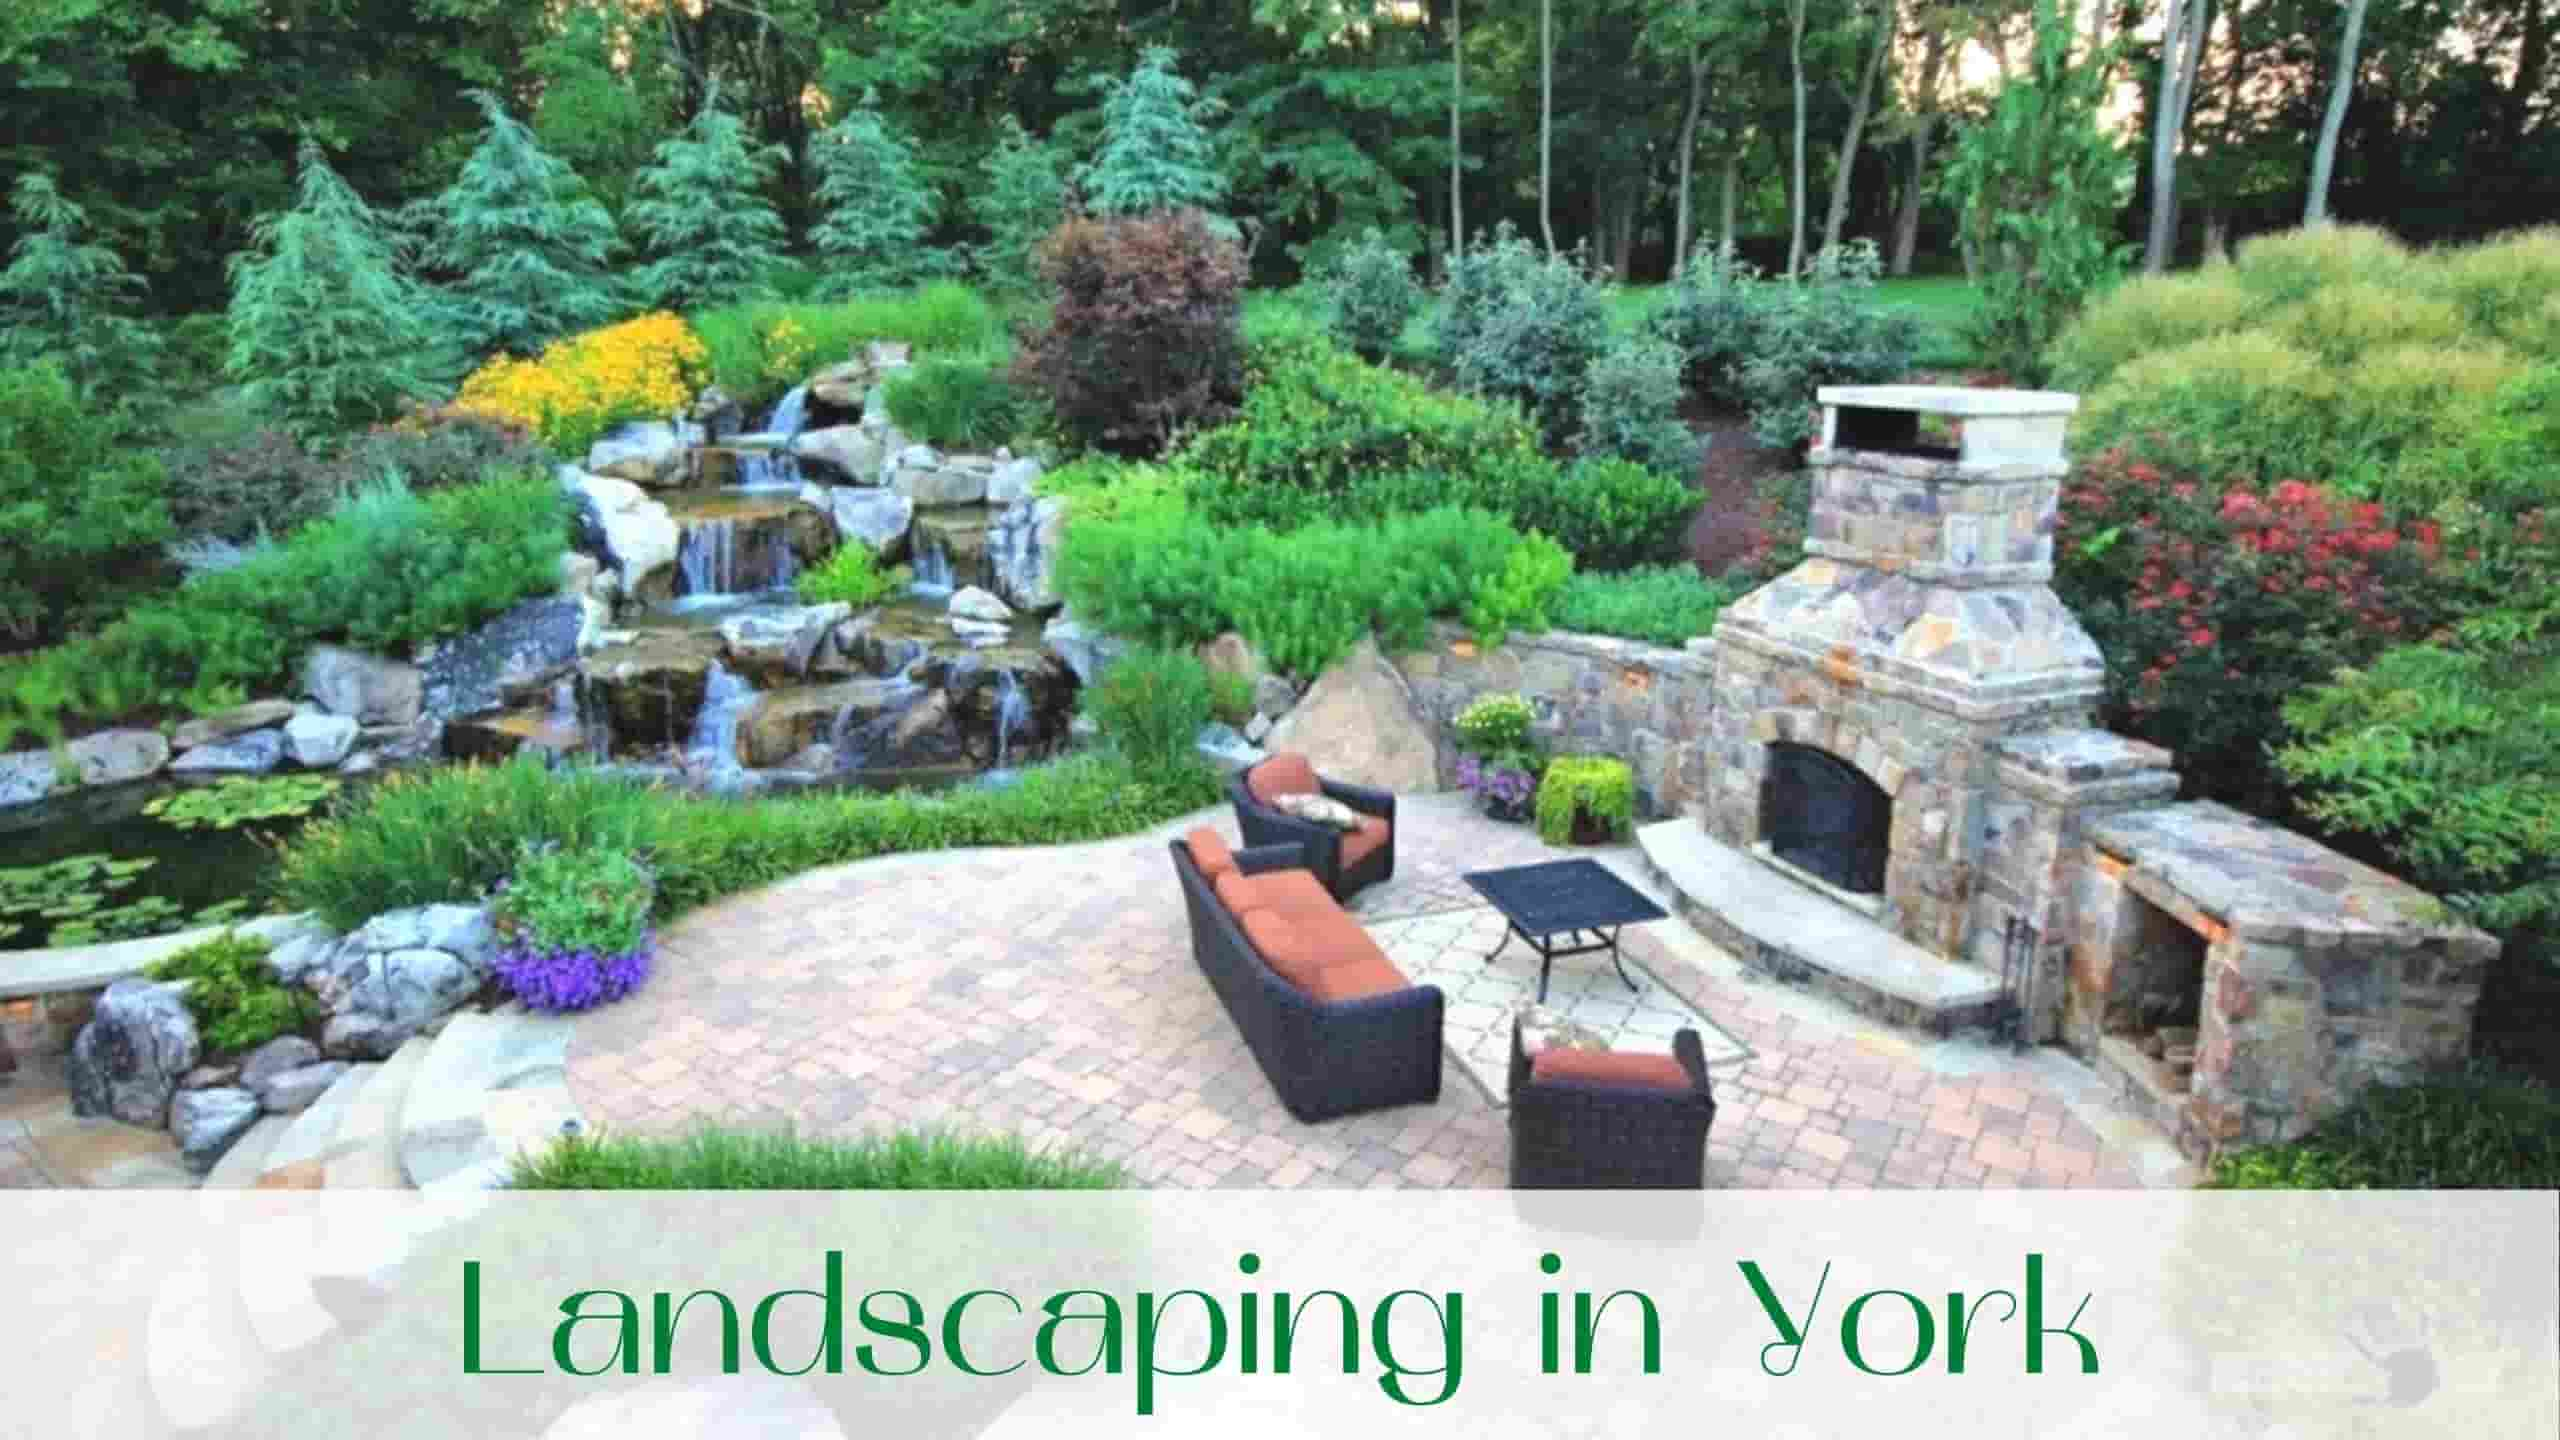 image-Landscaping-in-York